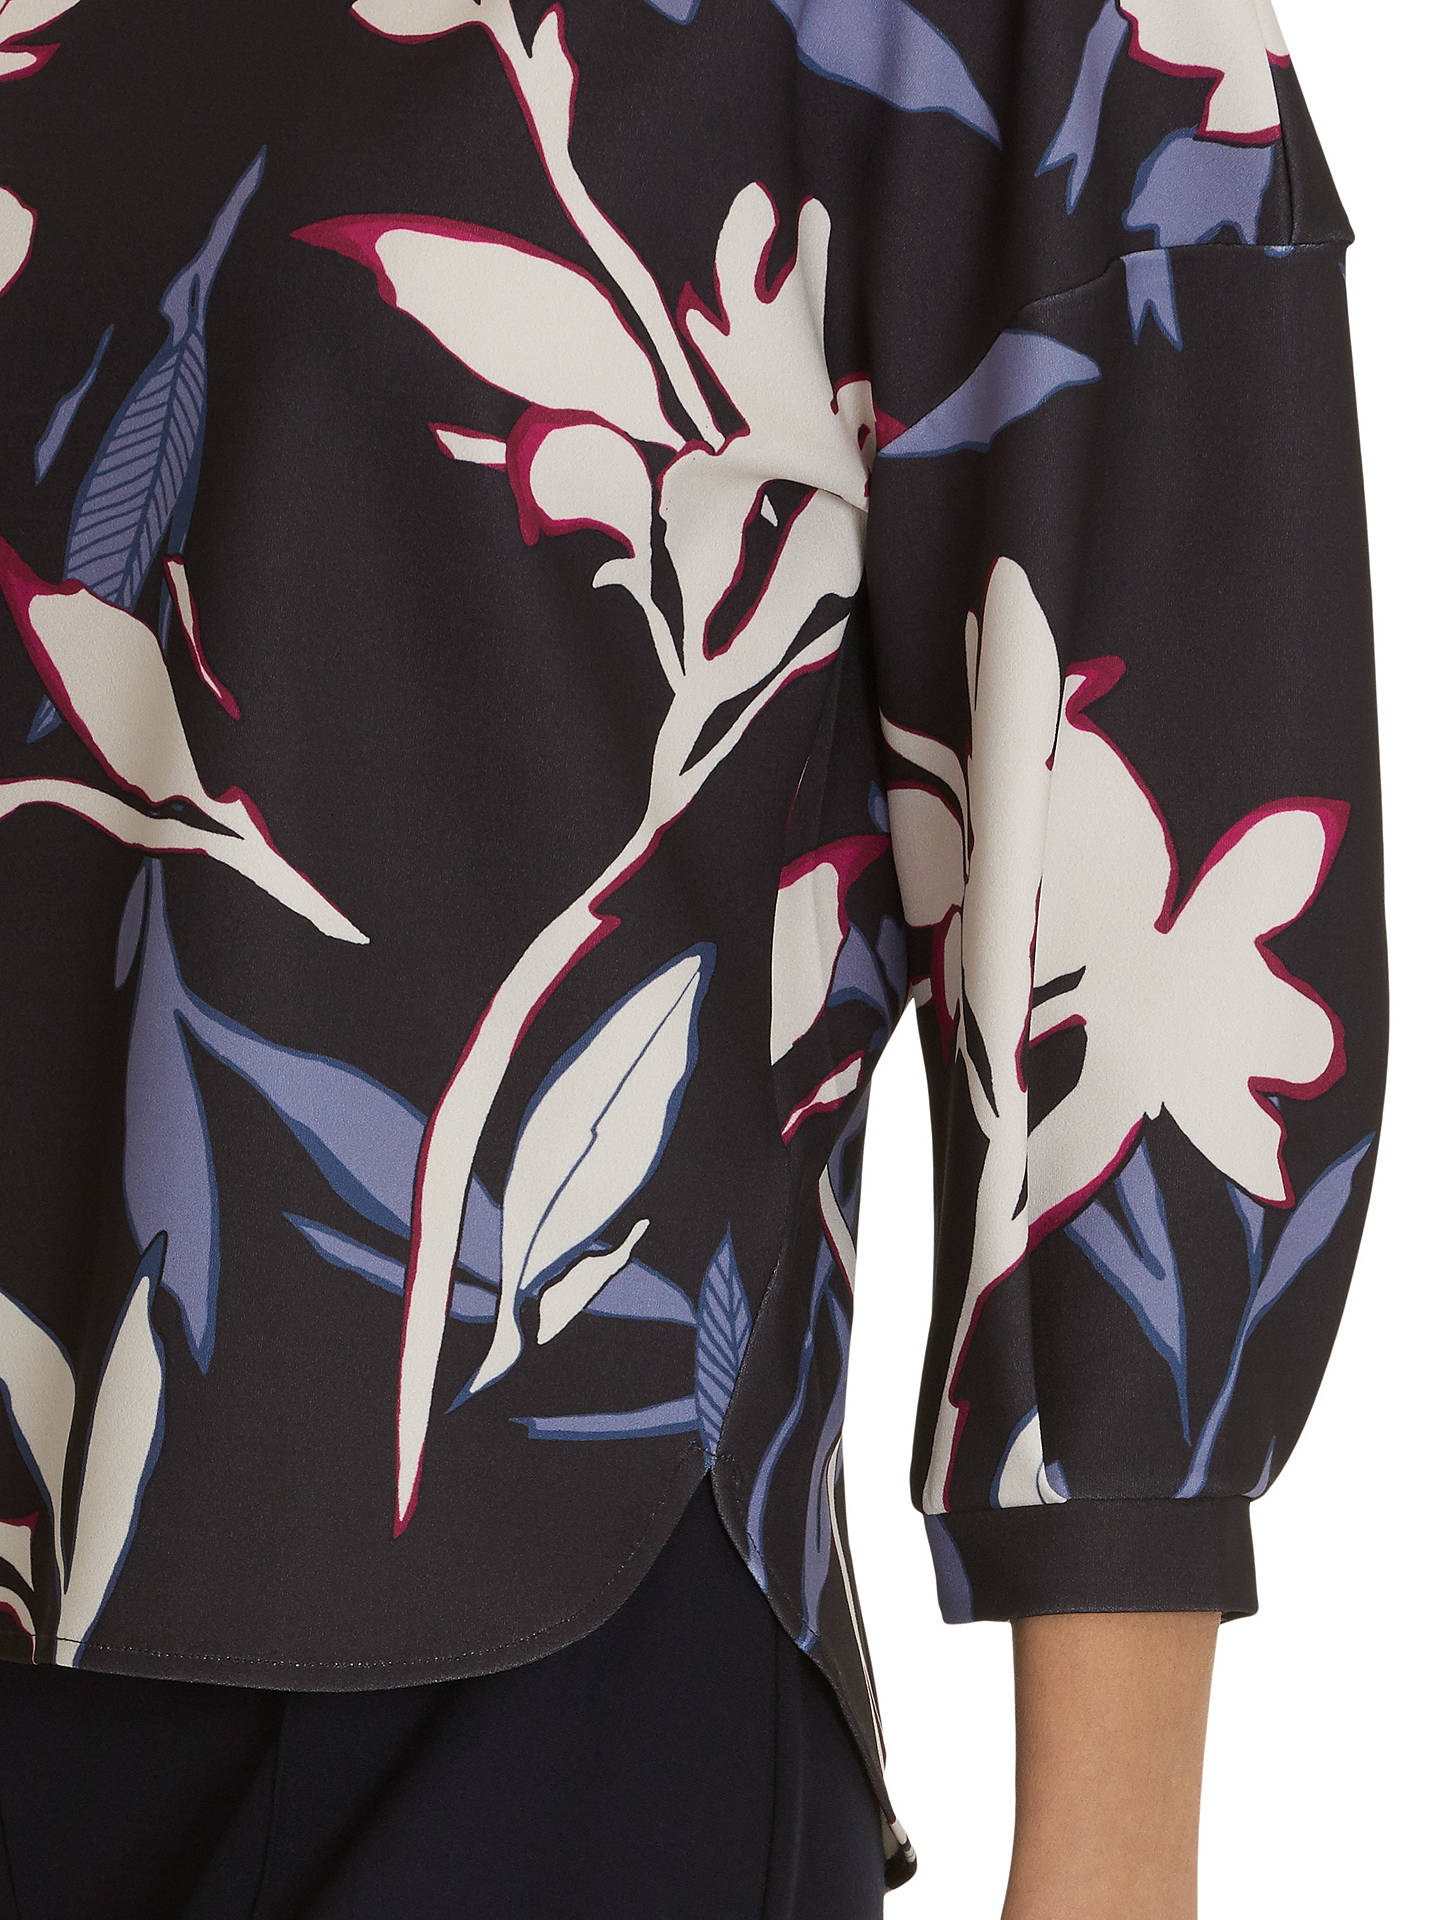 BuyBetty & Co. Floral Print Top, Grey/Cream, 10 Online at johnlewis.com